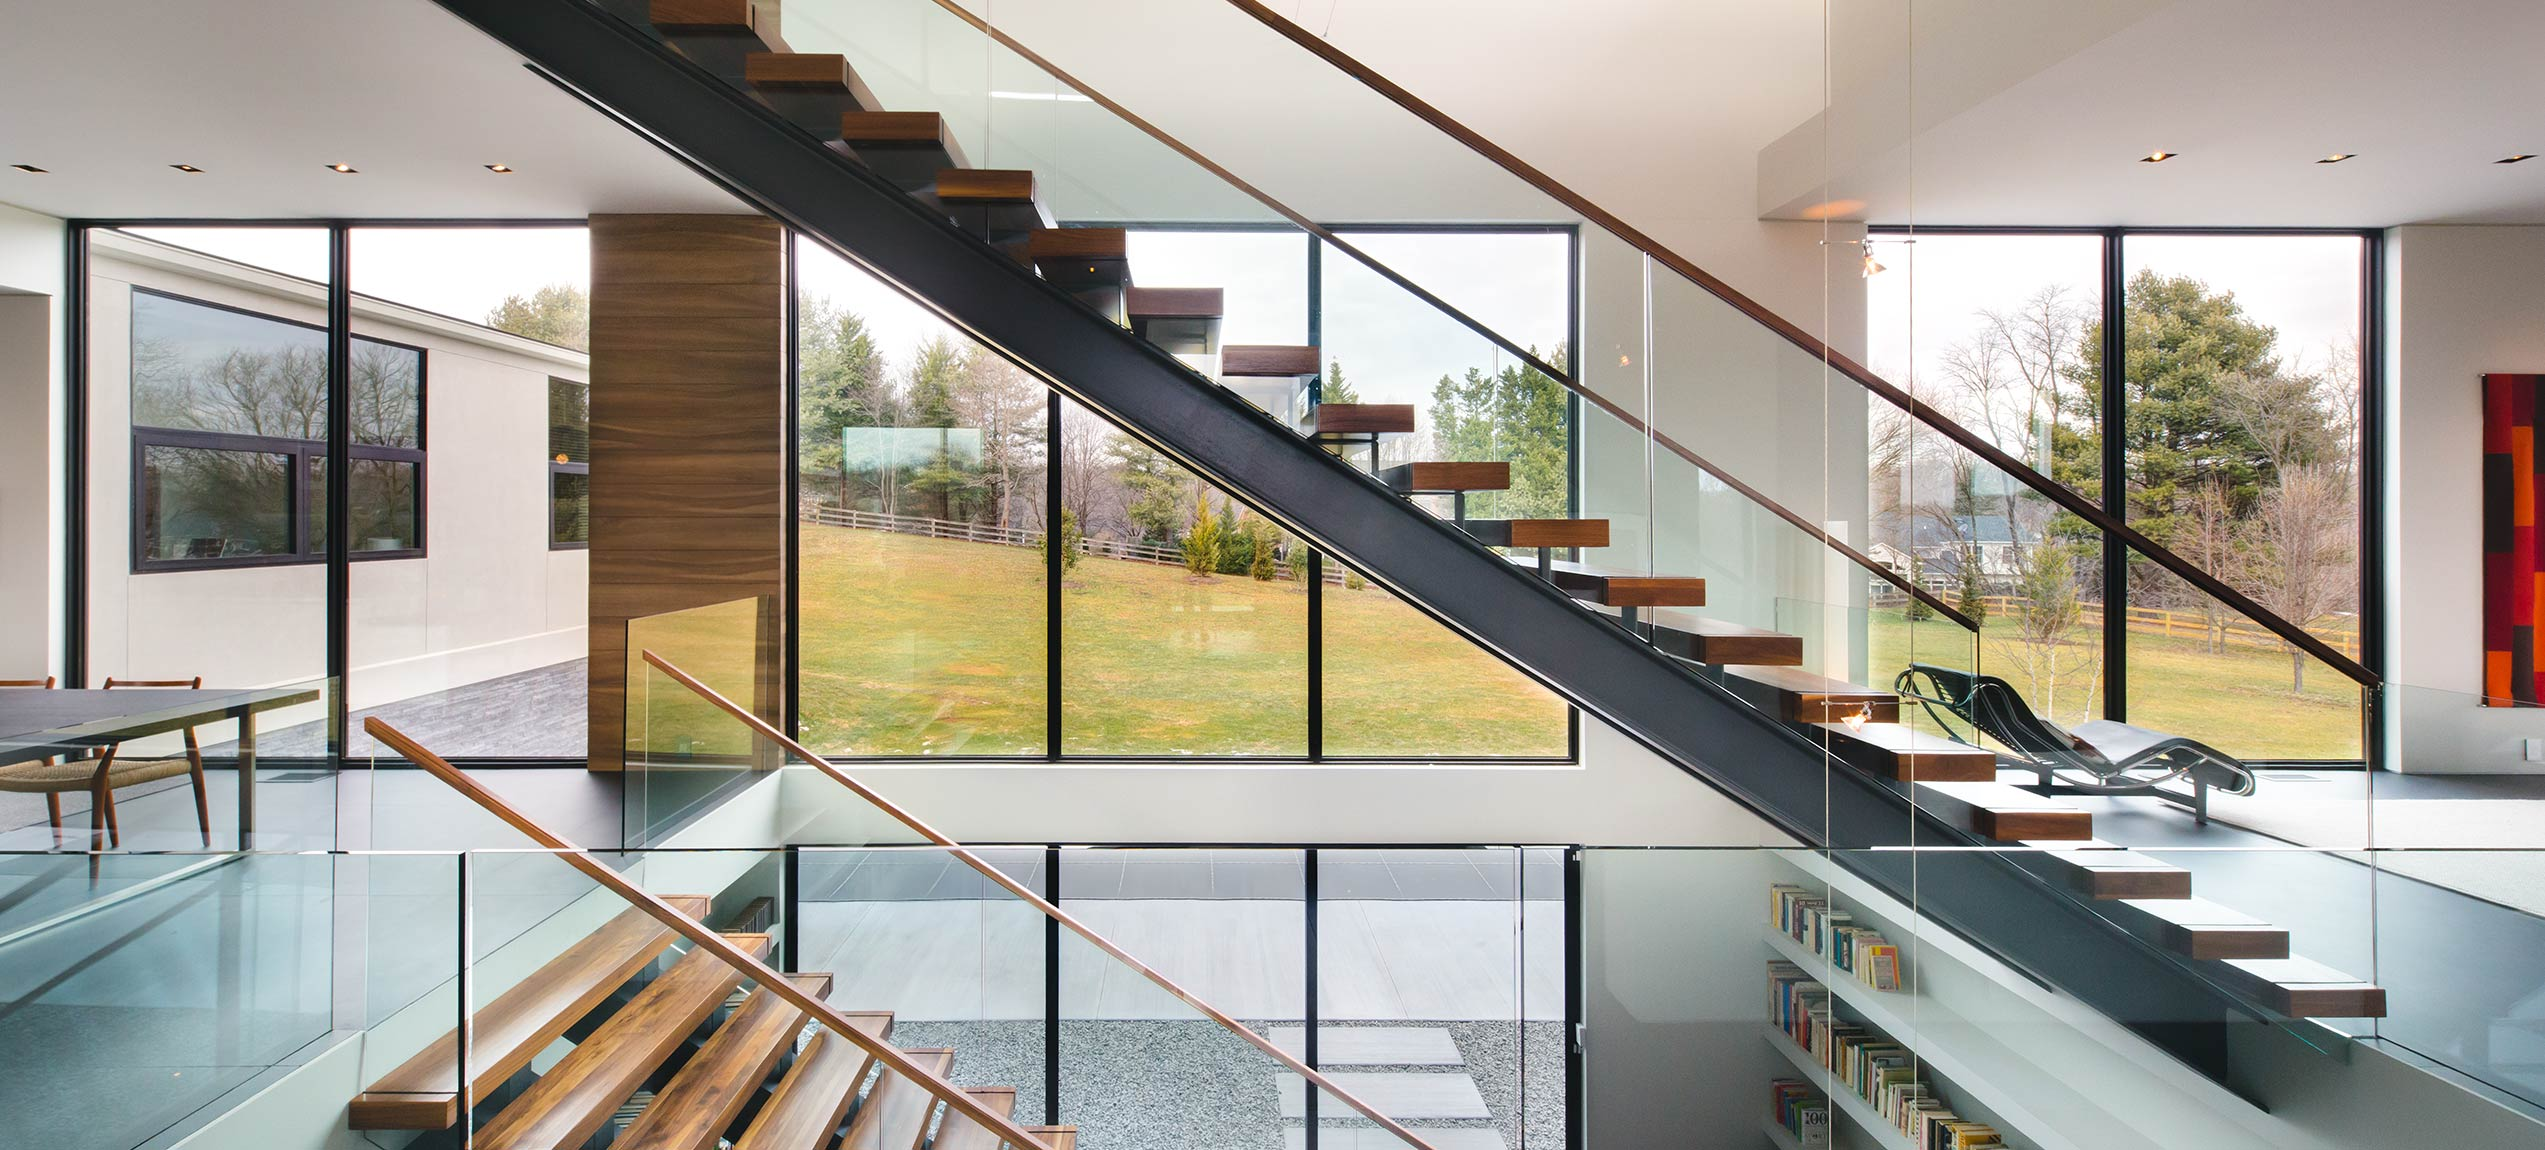 How exactly do new windows increase energy efficiency for Thickness of glass wall for exterior